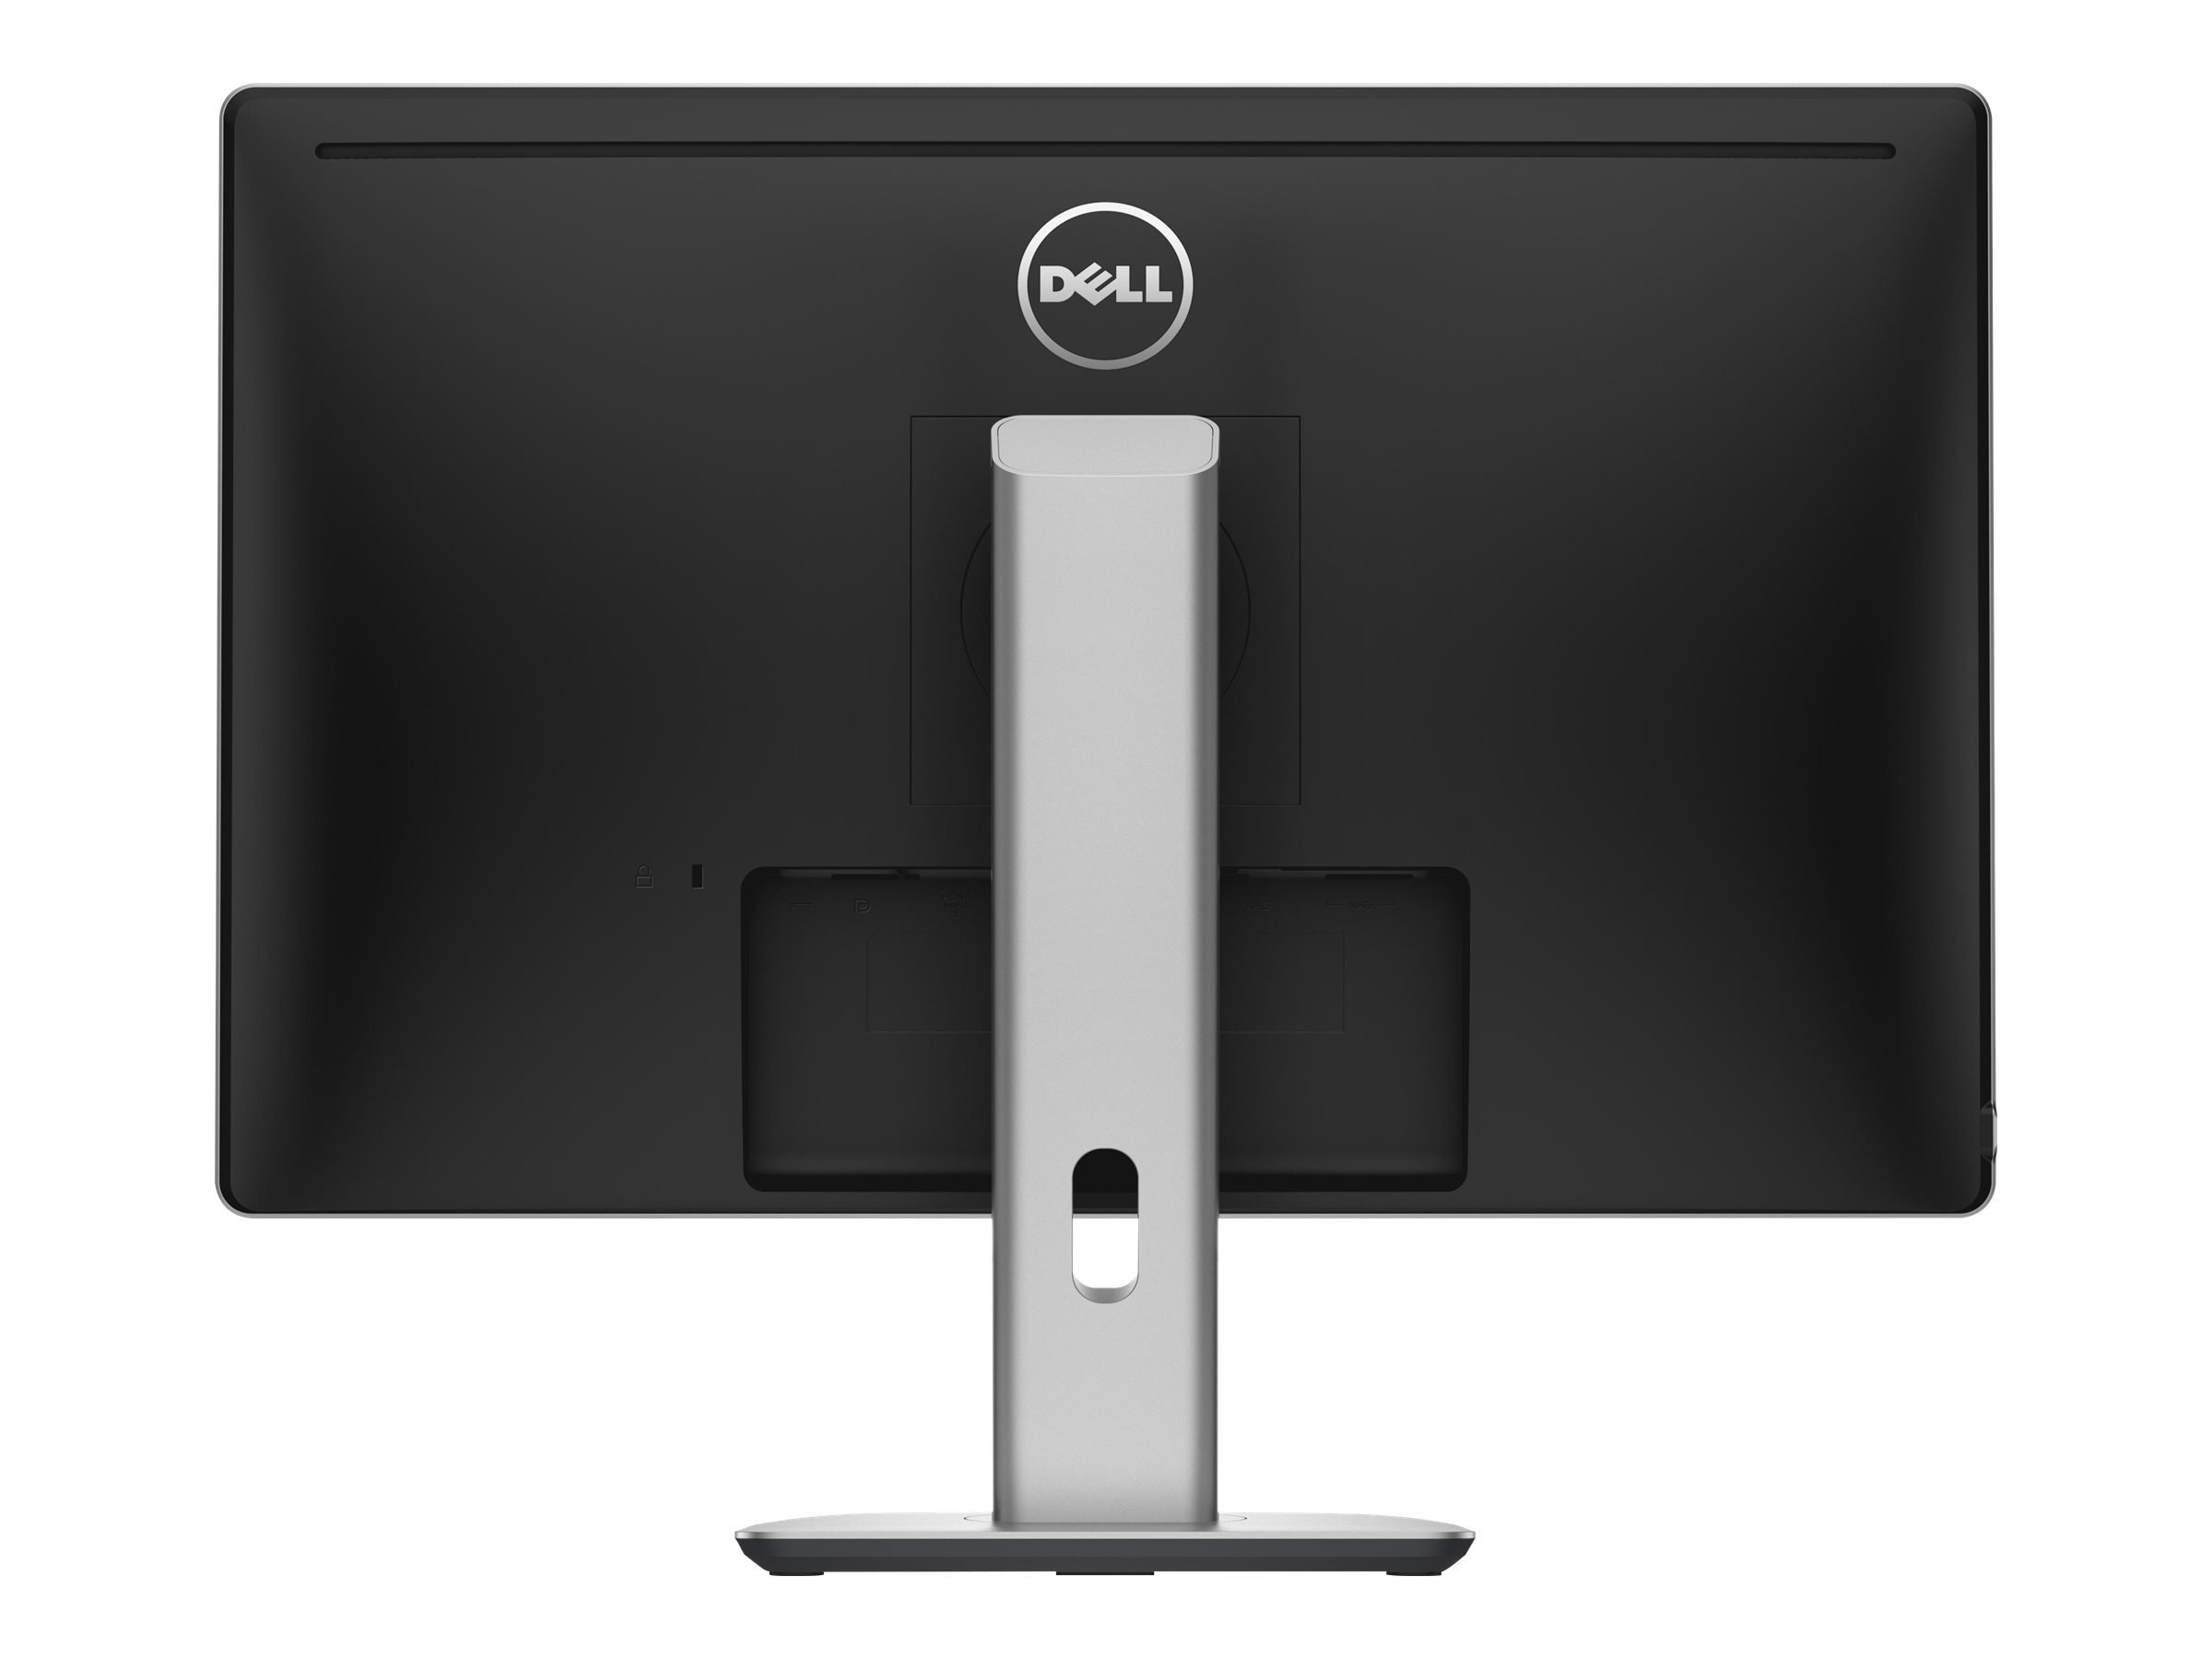 Dell Ultrasharp UZ2315H 23-Inch Screen LED-Lit Full HD Monitor with Webcam and Speakers by Dell (Image #9)